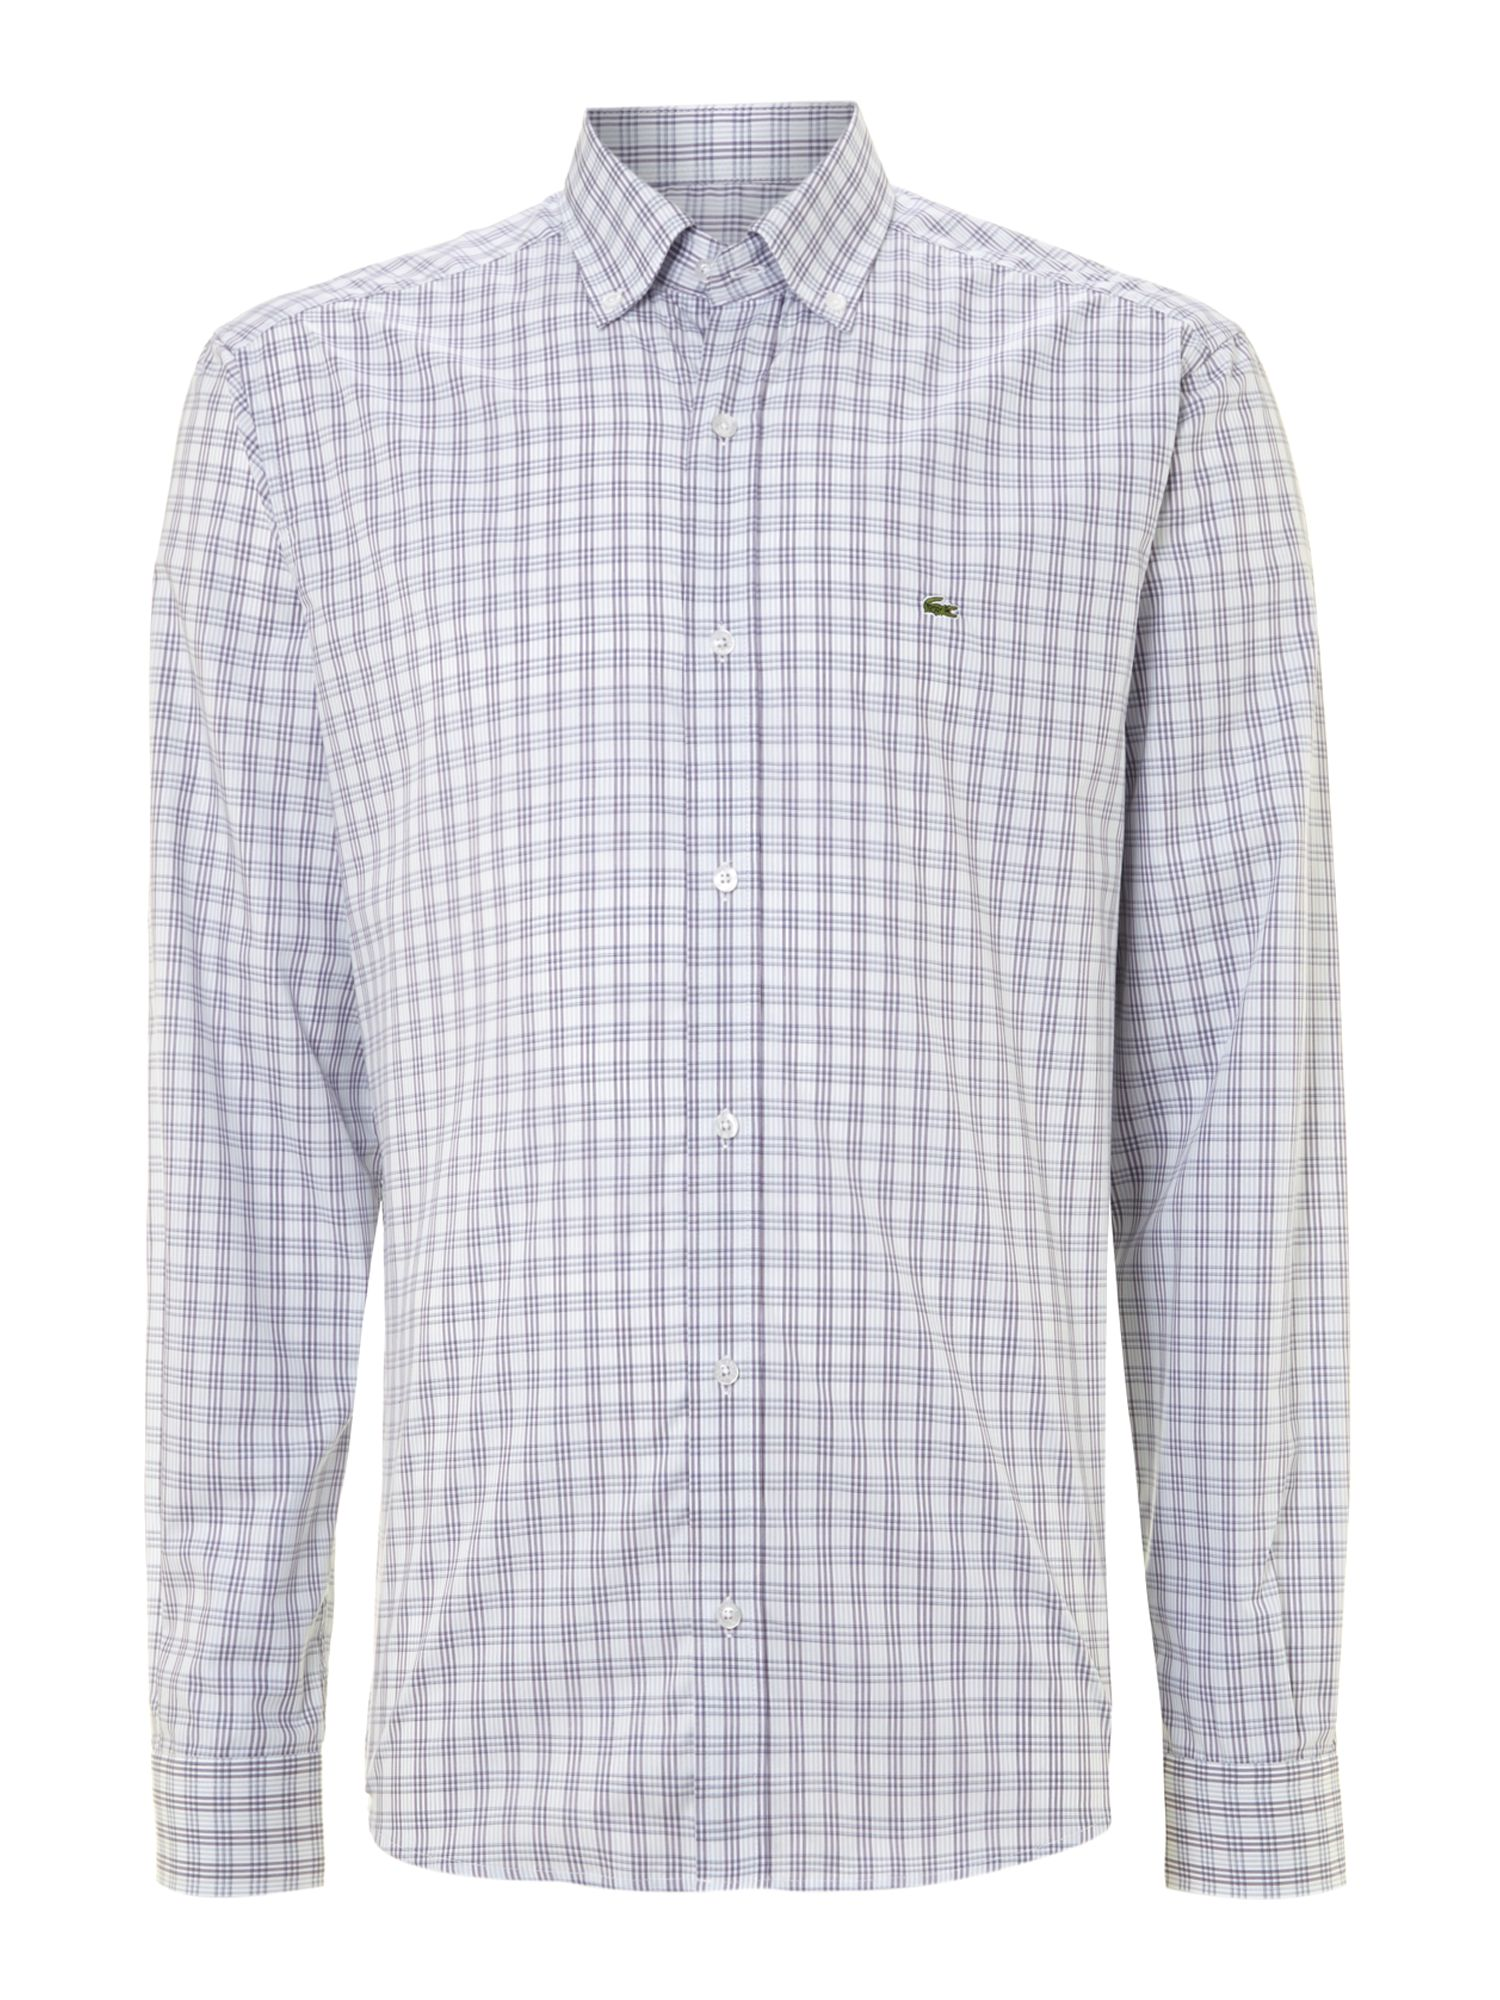 Lyst lacoste slim fit fine poplin check shirt in blue for Slim fit check shirt